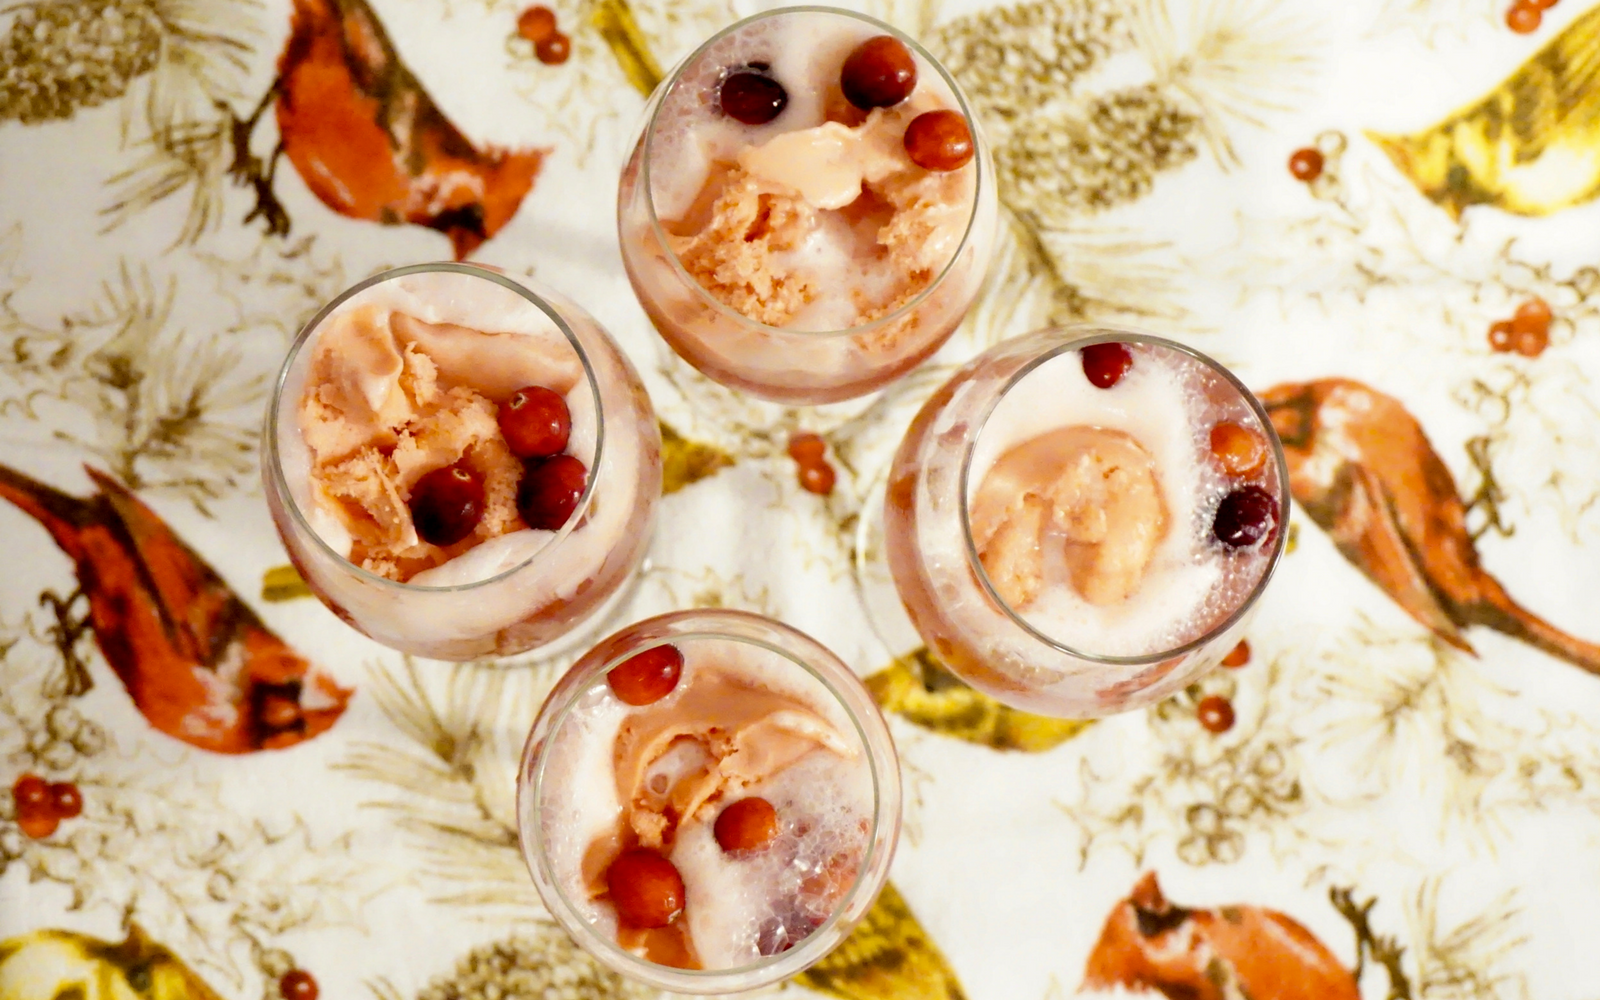 Make Use of Leftover 2-Liters with Champagne Holiday Punch